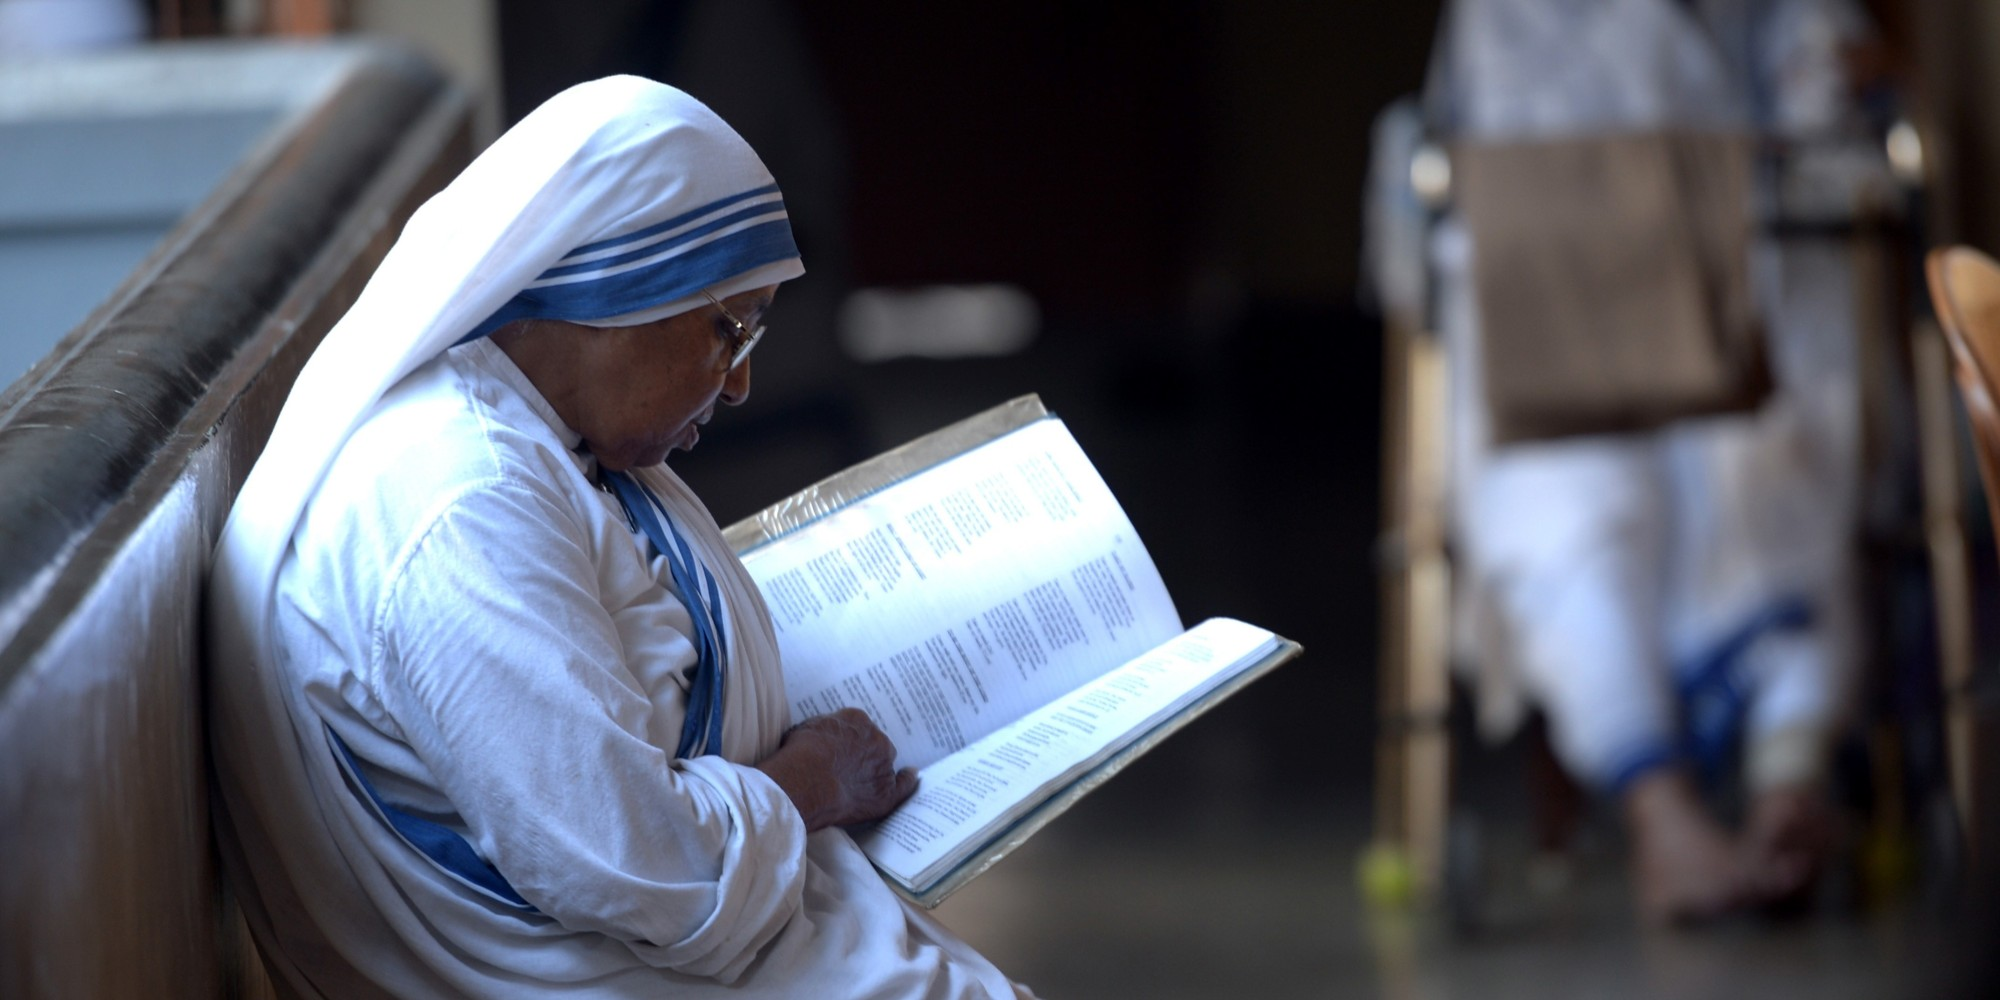 http://i.huffpost.com/gen/3519920/images/o-MISSIONARIES-OF-CHARITY-INDIA-facebook.jpg